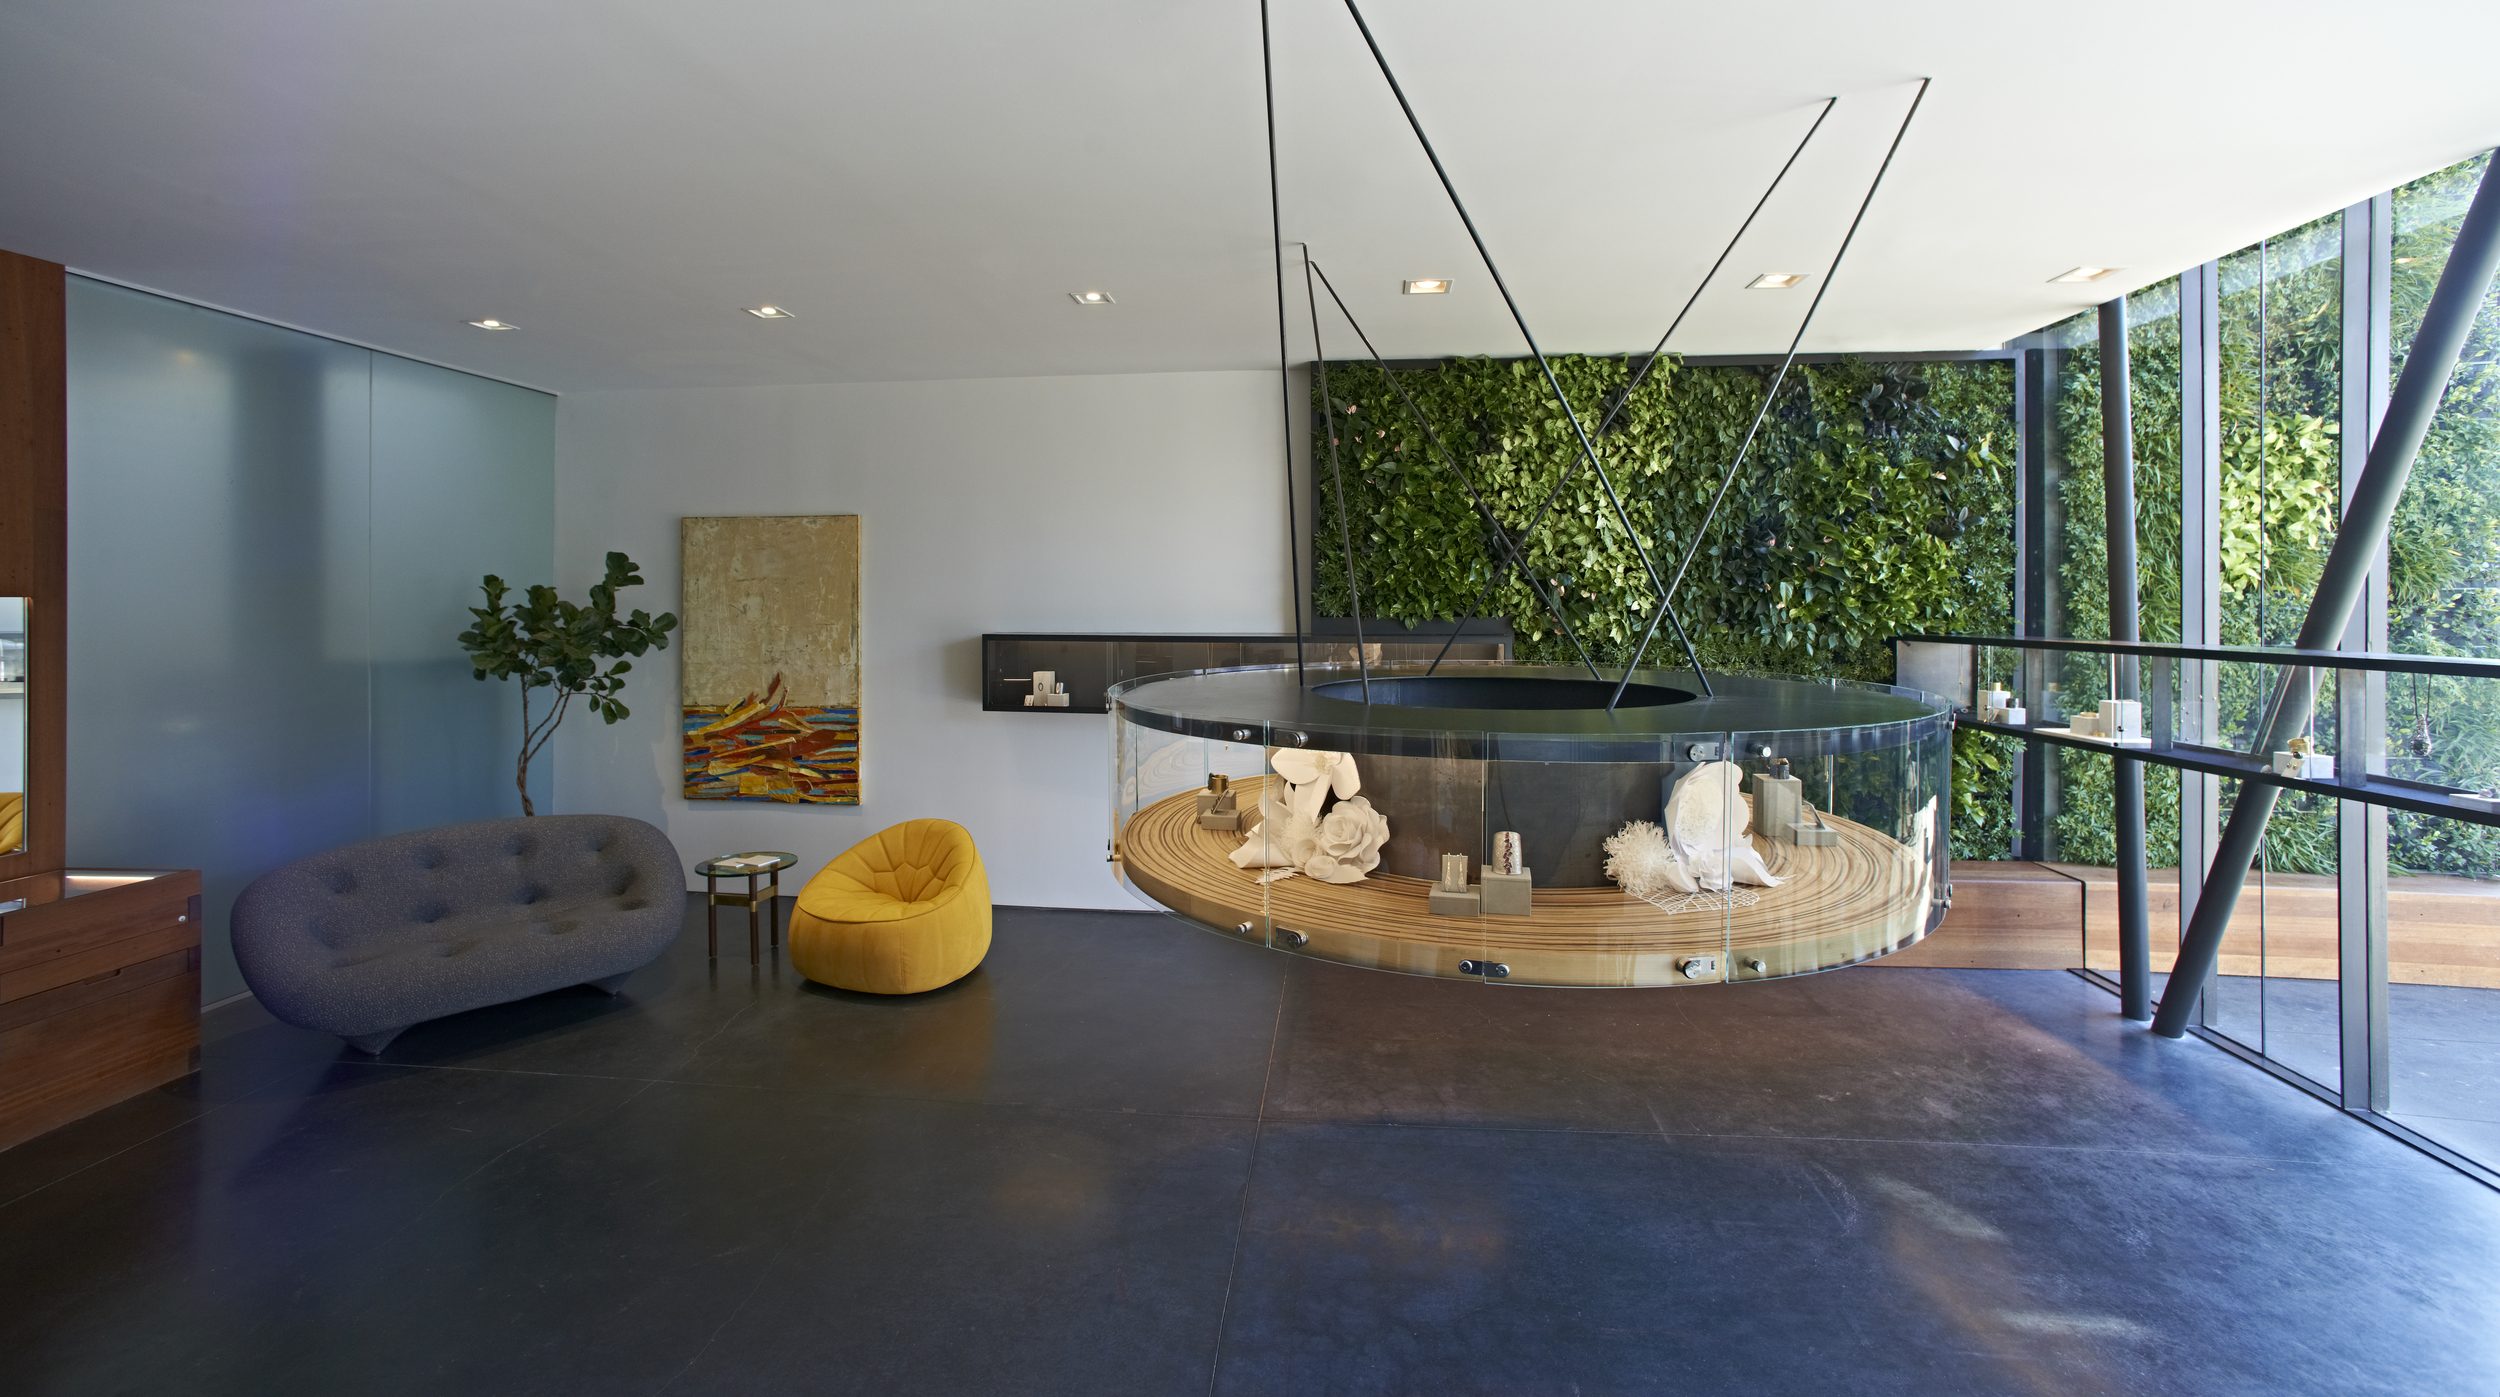 Airy enough? A live plant wall brings the outside in.